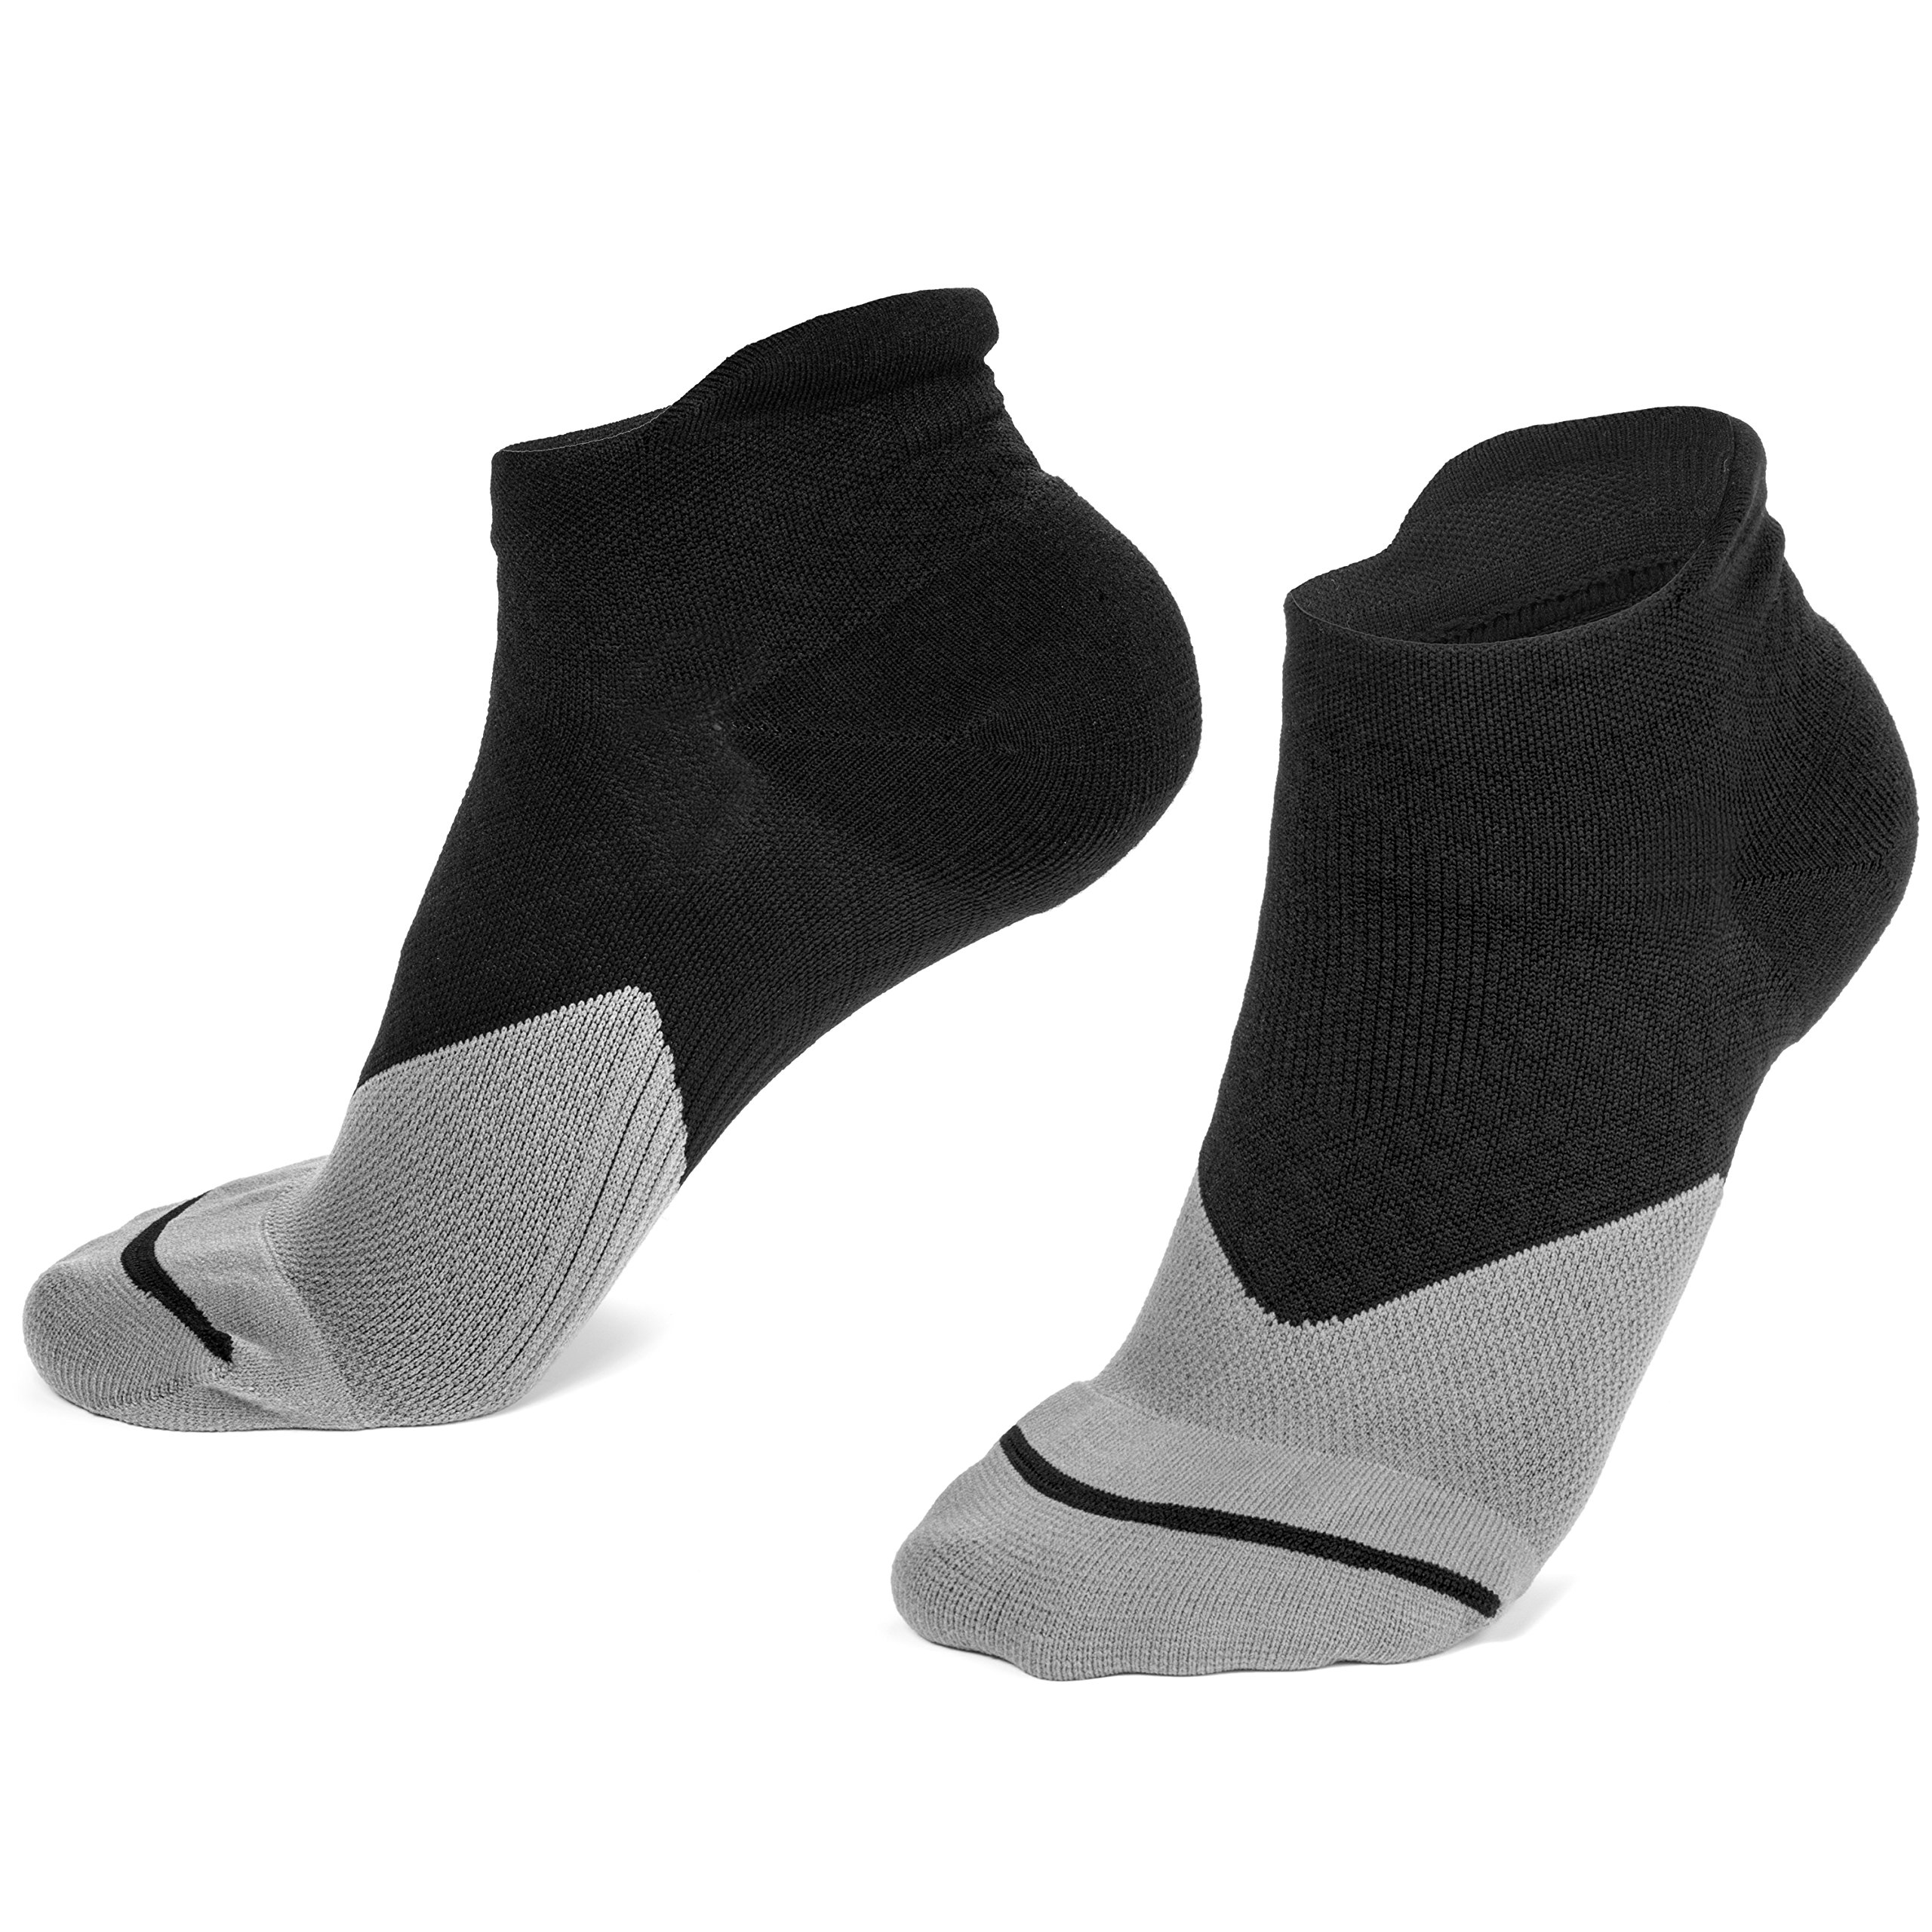 Plantar Fasciitis Compression Socks for Men & Women - Best Heel and Arch Support Brace for Everyday Foot Pain Relief - Better Treatment Than Shoes, Sleeves, Splints, Inserts, Insoles, Orthotics!